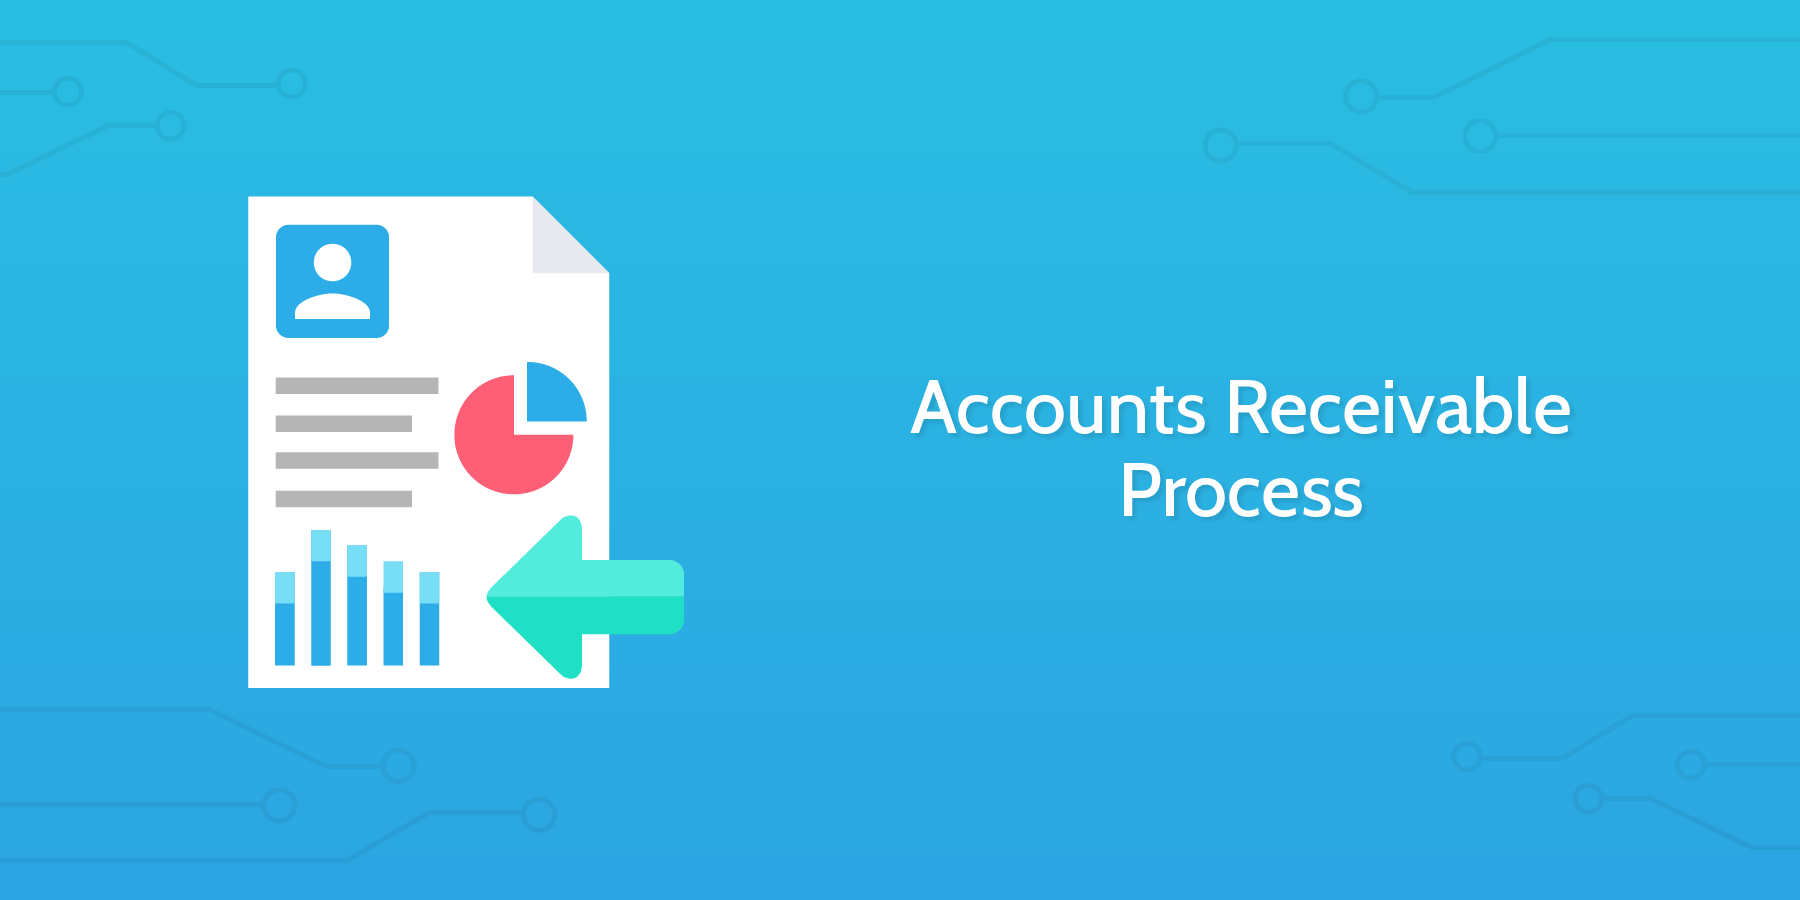 Accounts Receivable Process